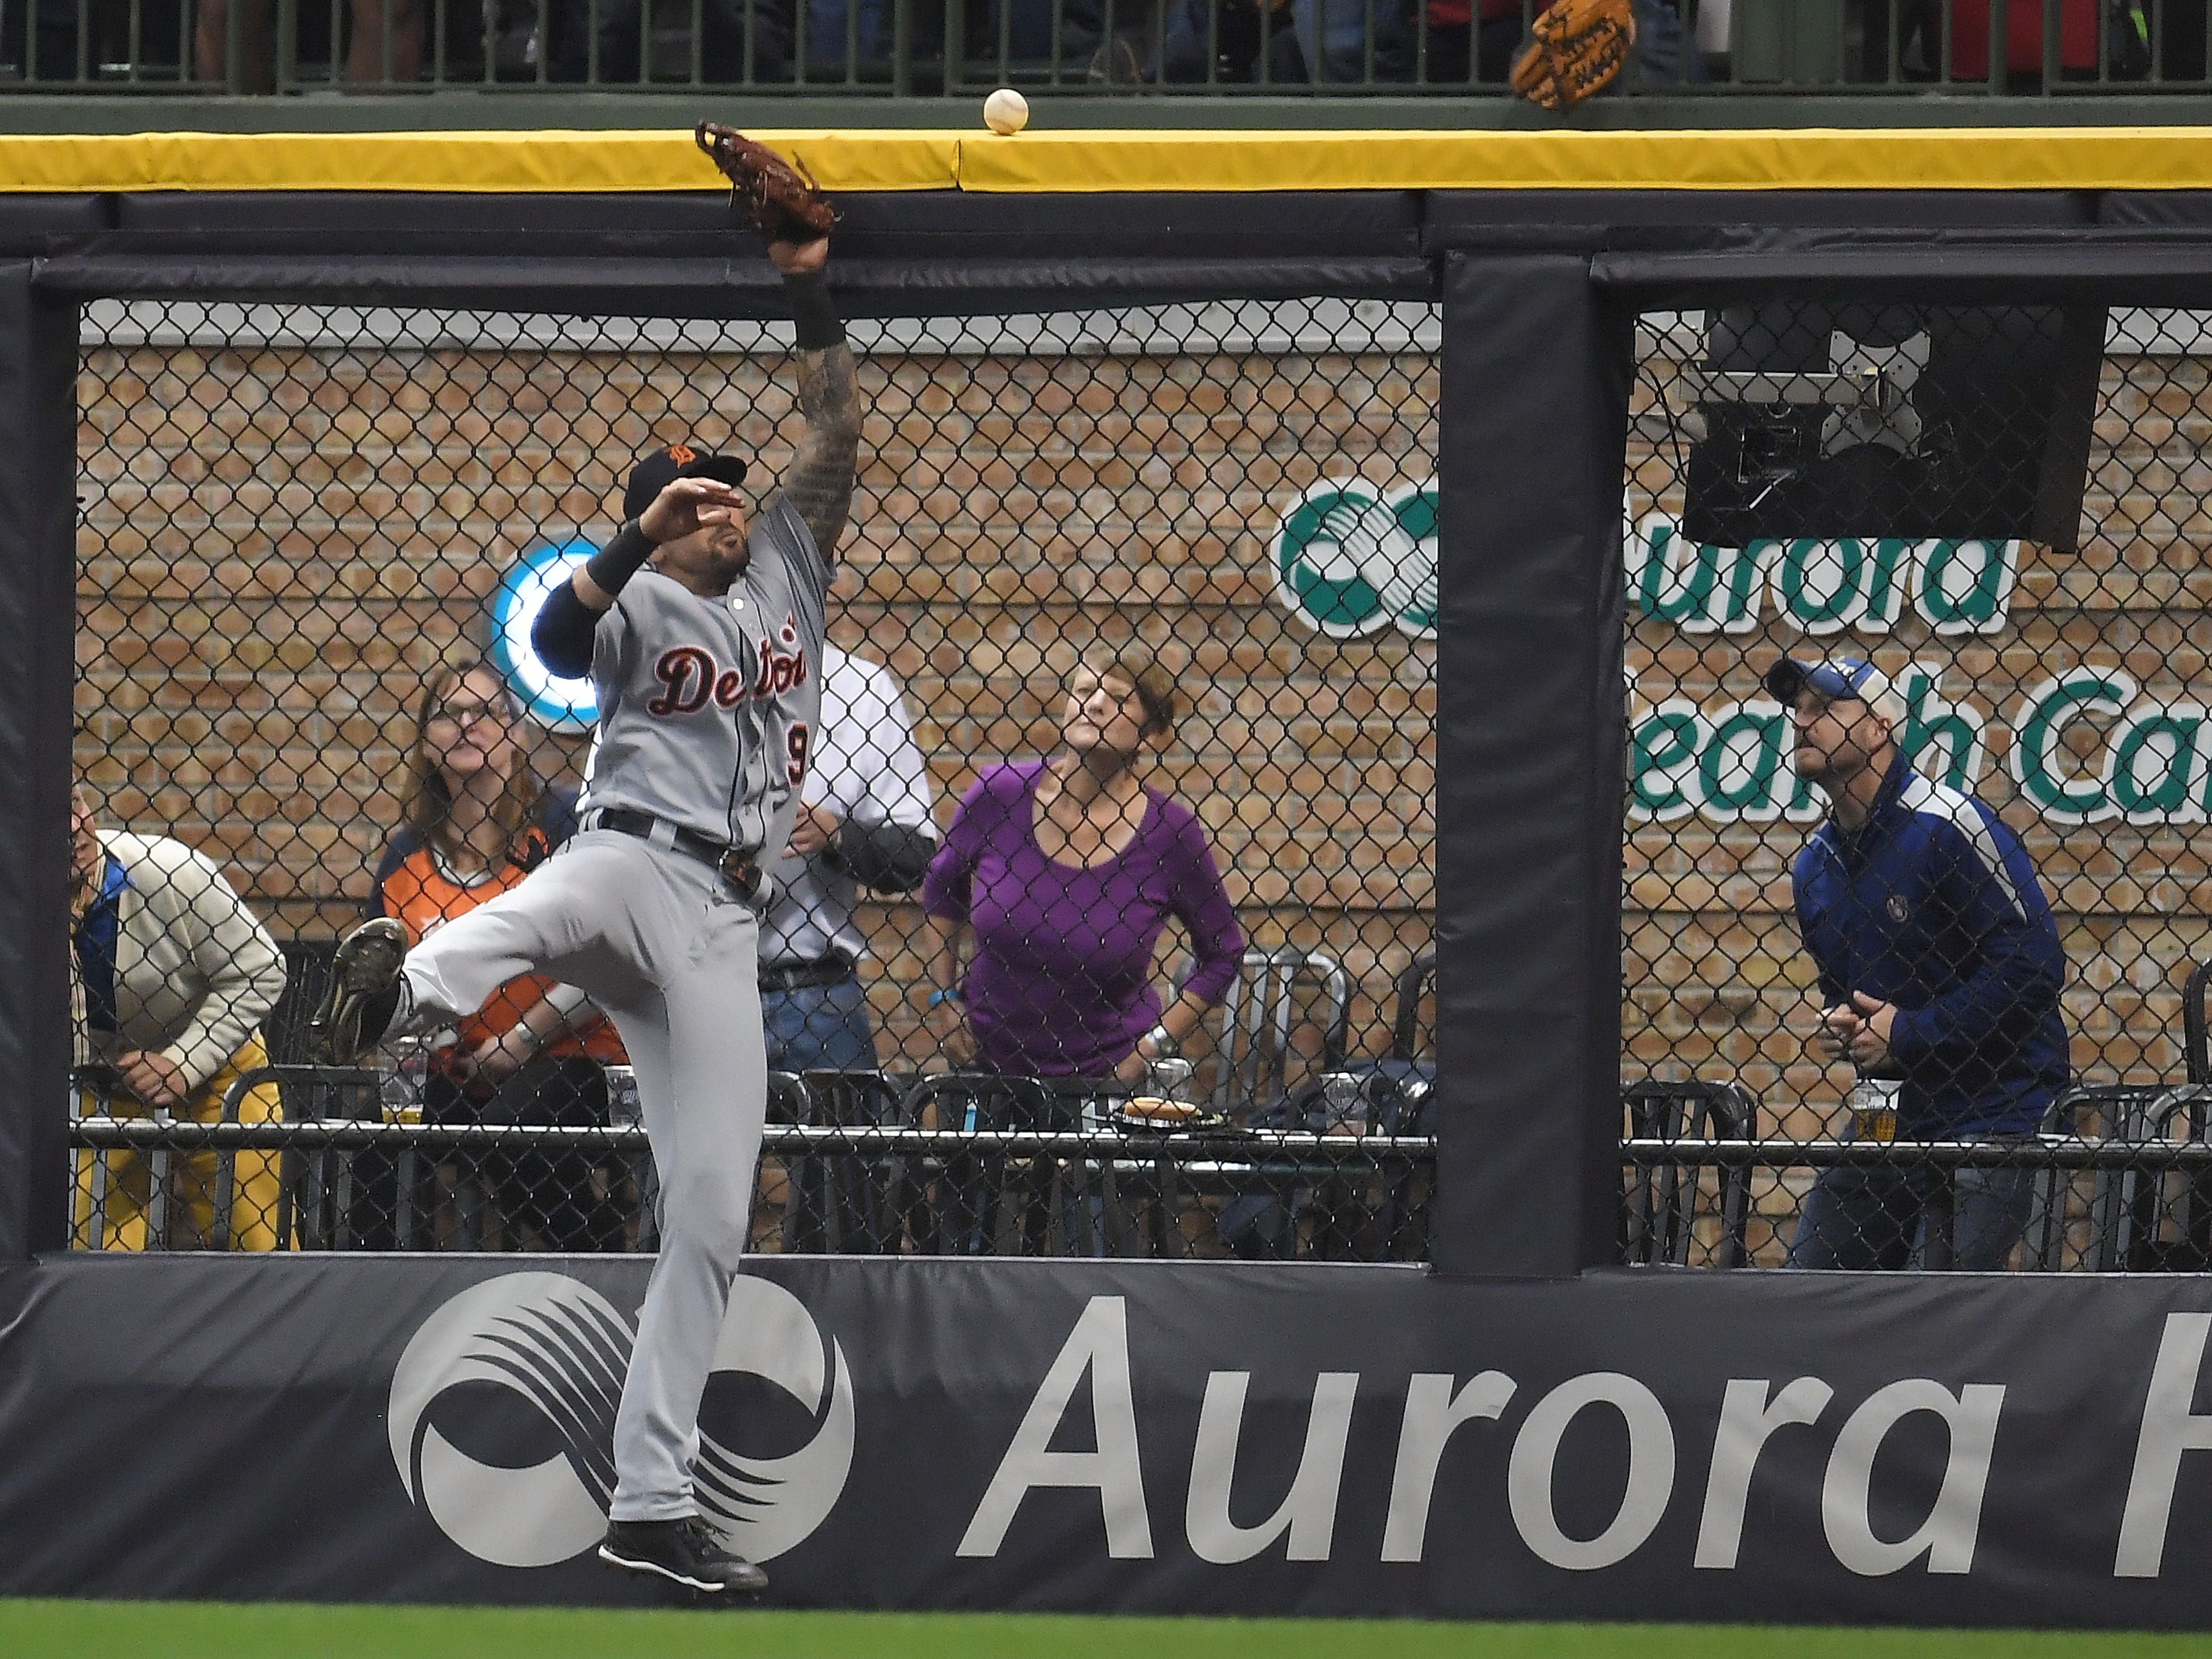 Detroit Tigers RF Nicholas Castellanos is unable to catch a home run hit by the Milwaukee Brewers' Ryan Braun during the eighth inning Friday, Sept. 28, 2018, in Milwaukee.